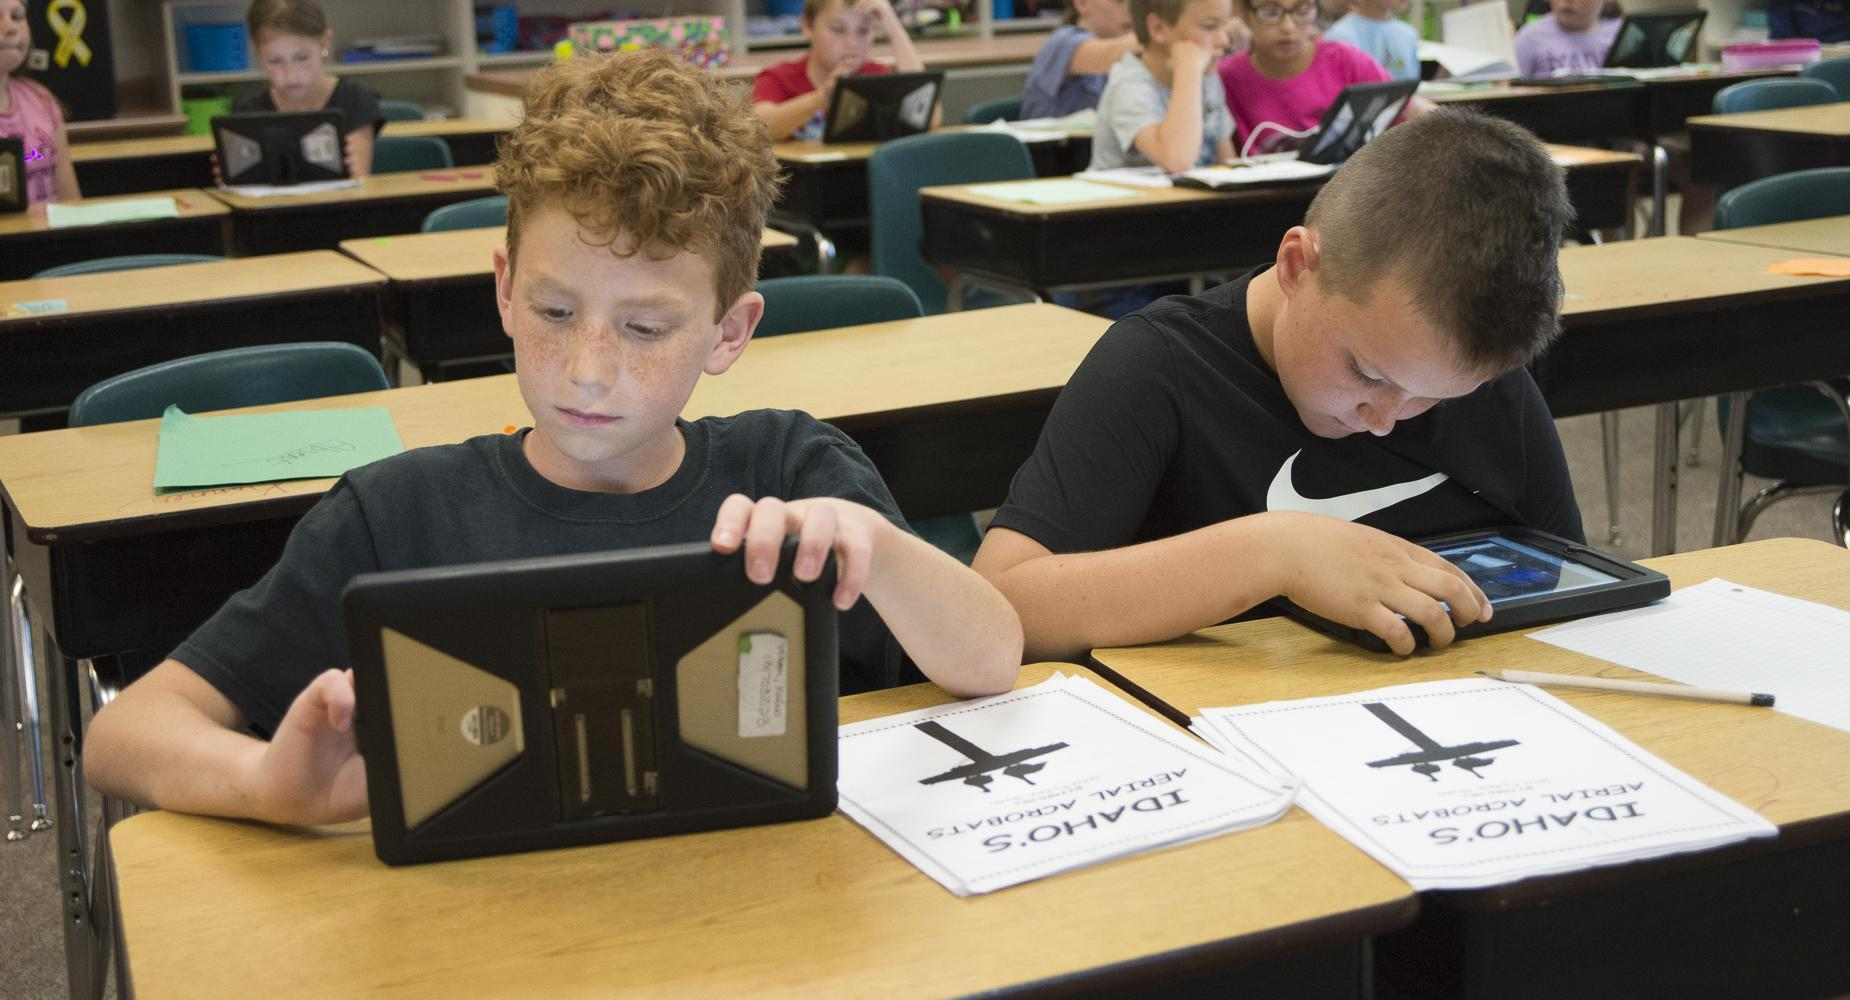 Two boys work on their iPads